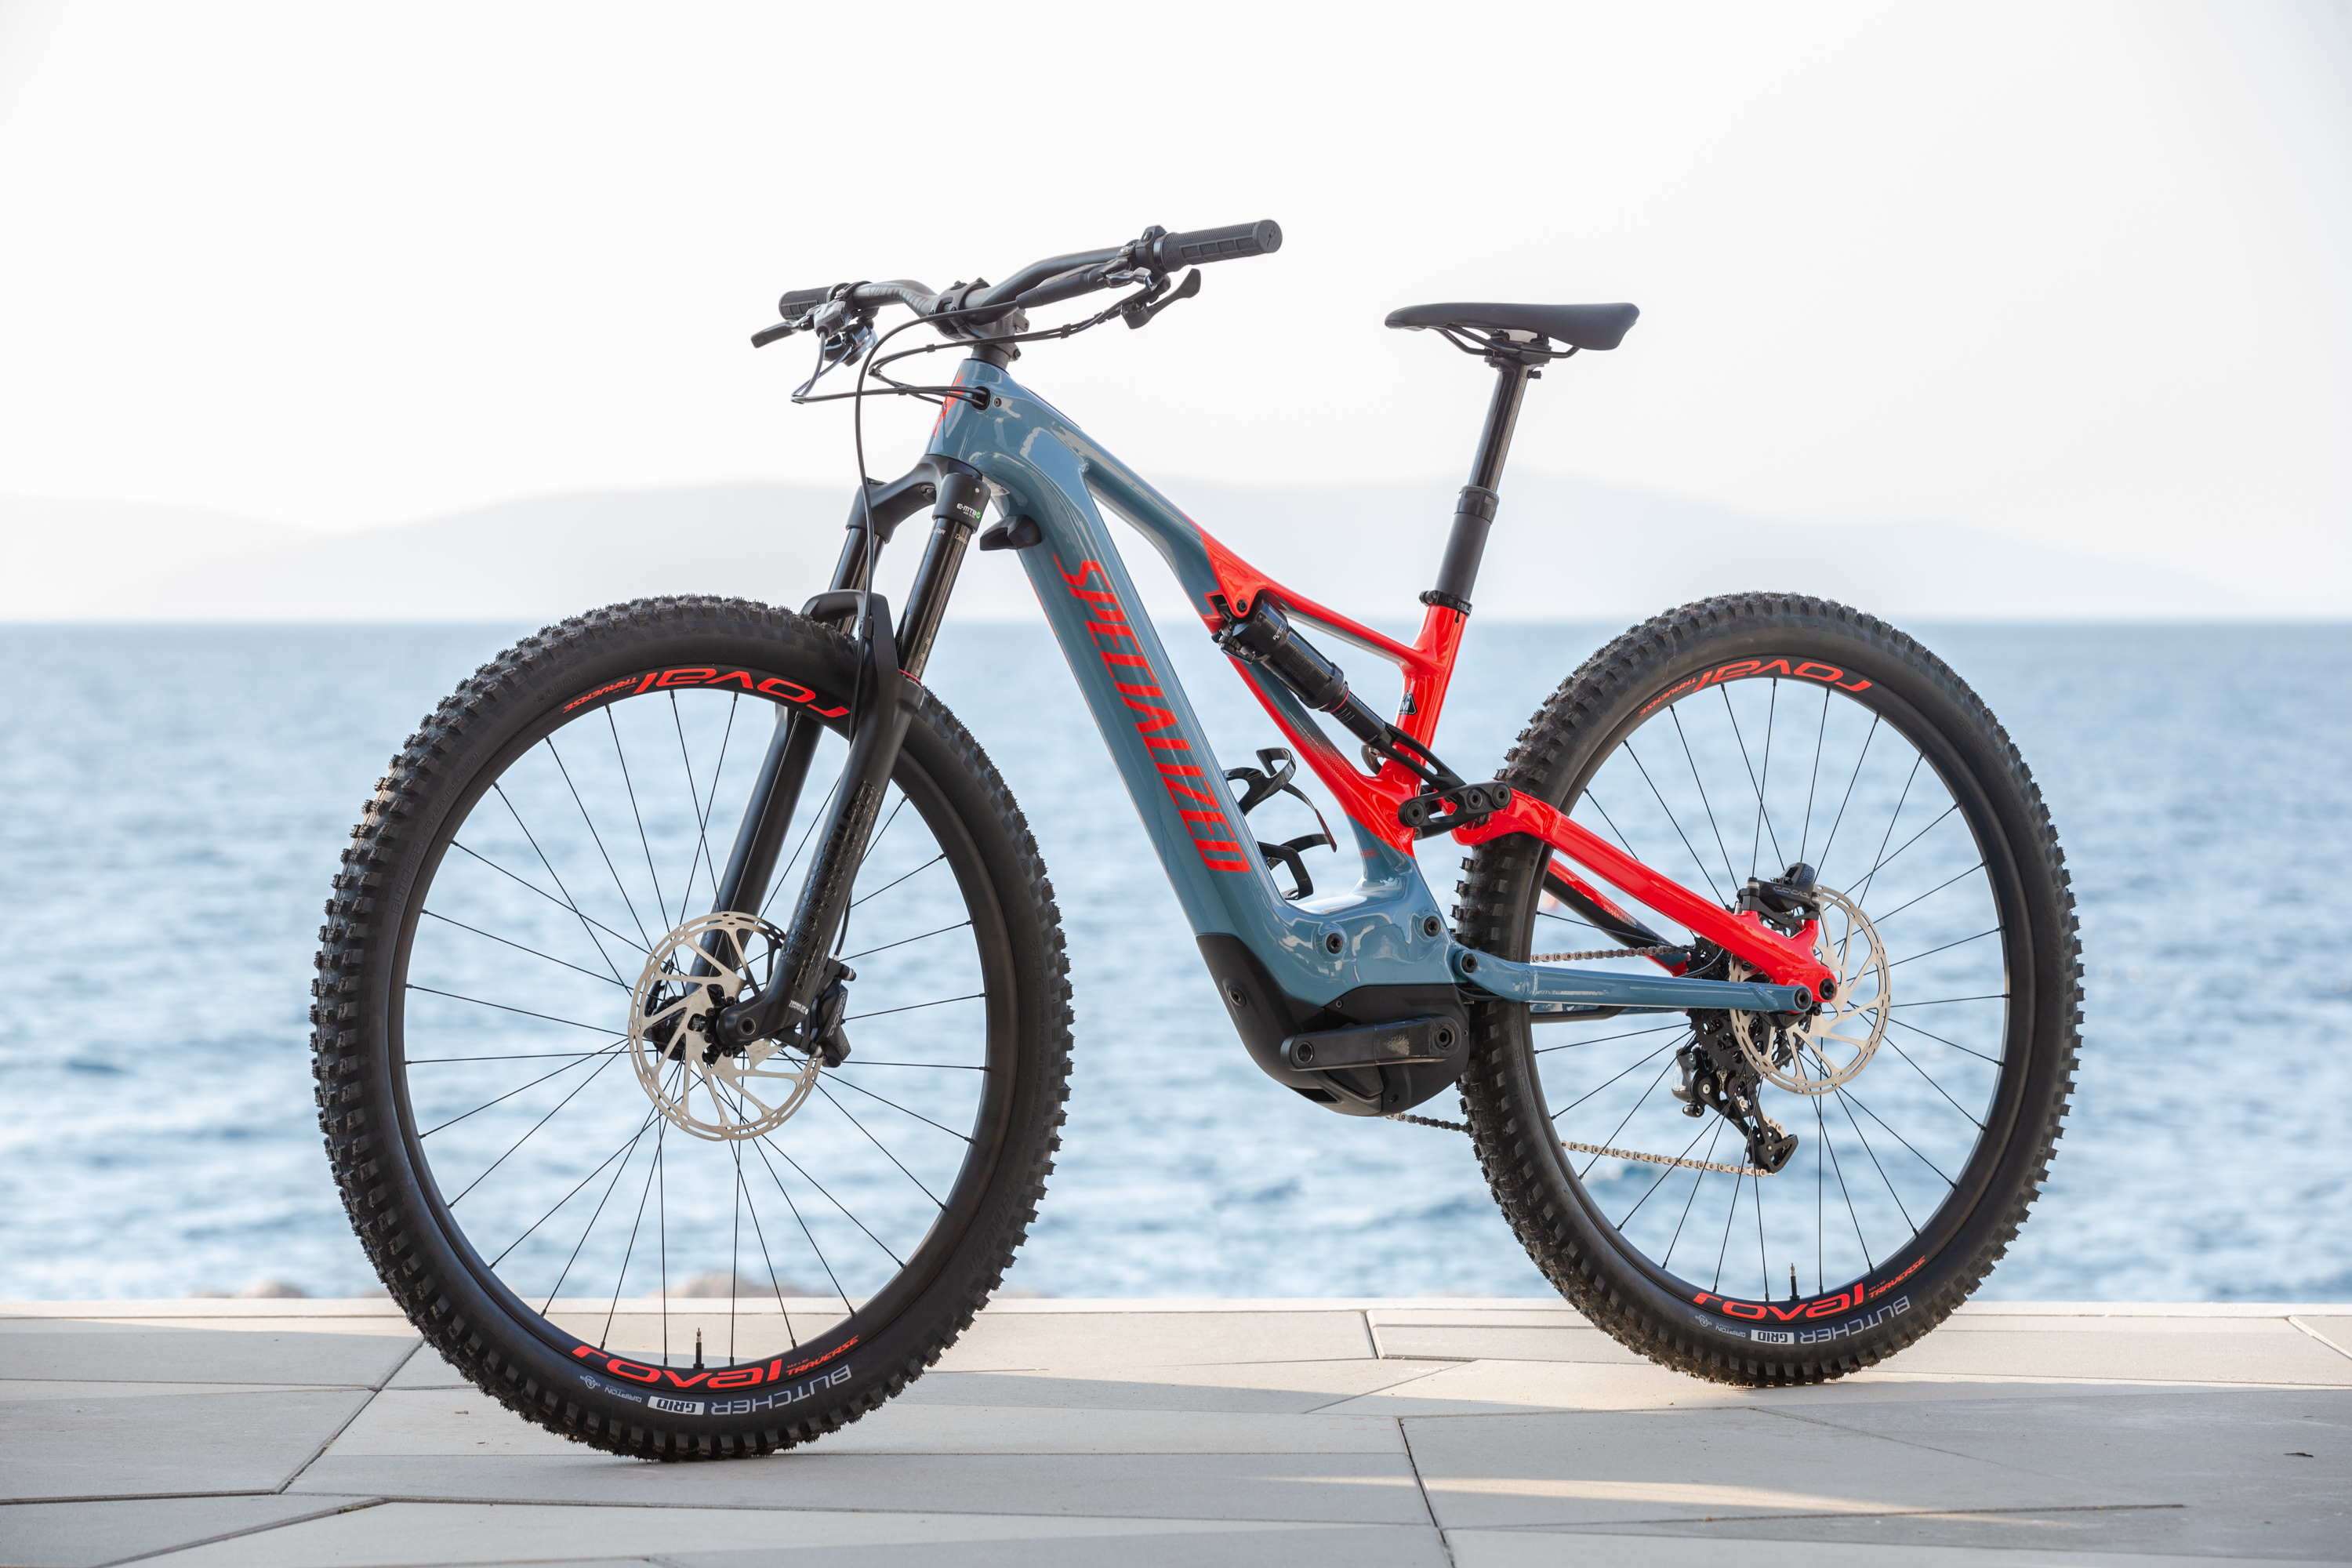 2610cea3458 2019 Specialized Turbo Levo first ride - MBR